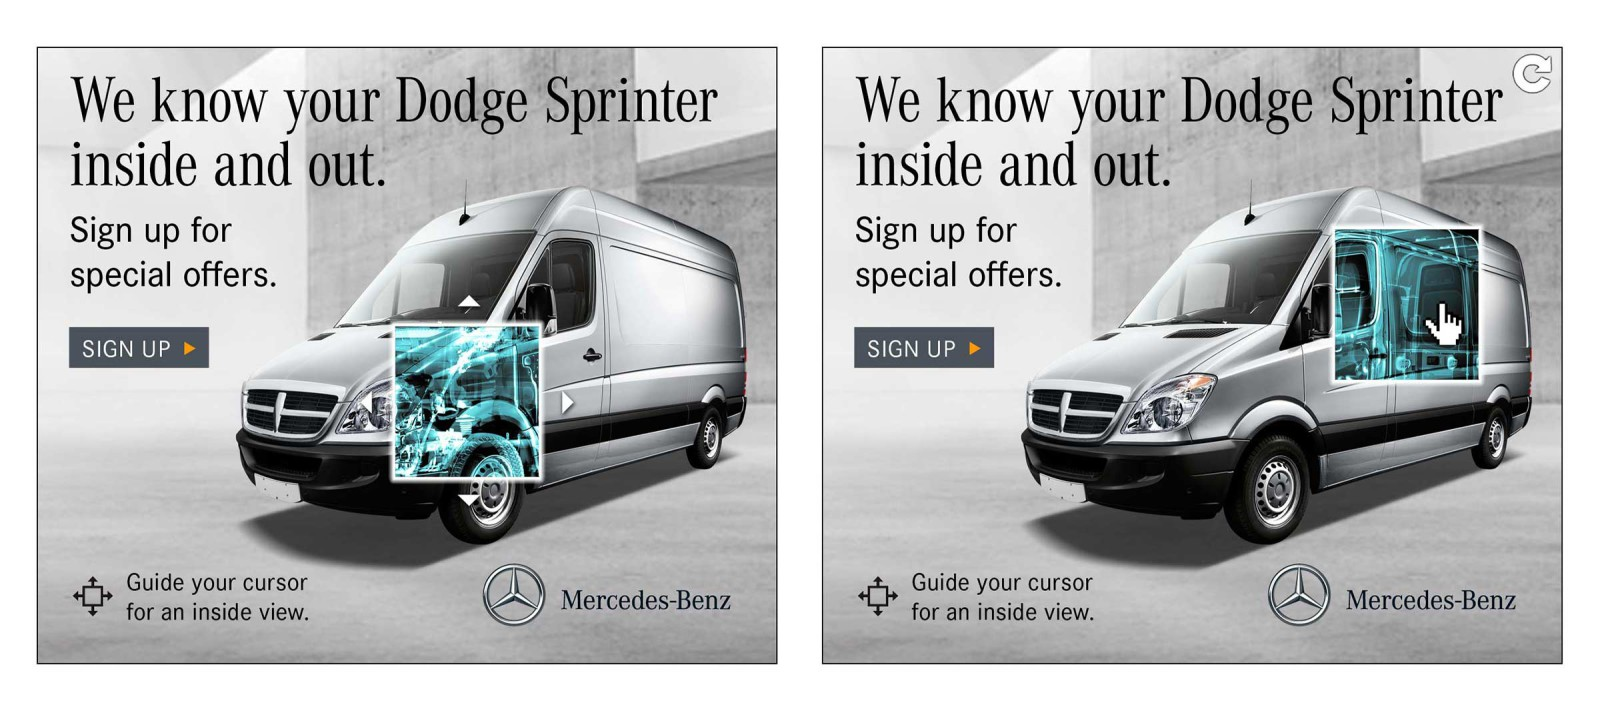 Sprinter-Inside-Out-service-square-banner